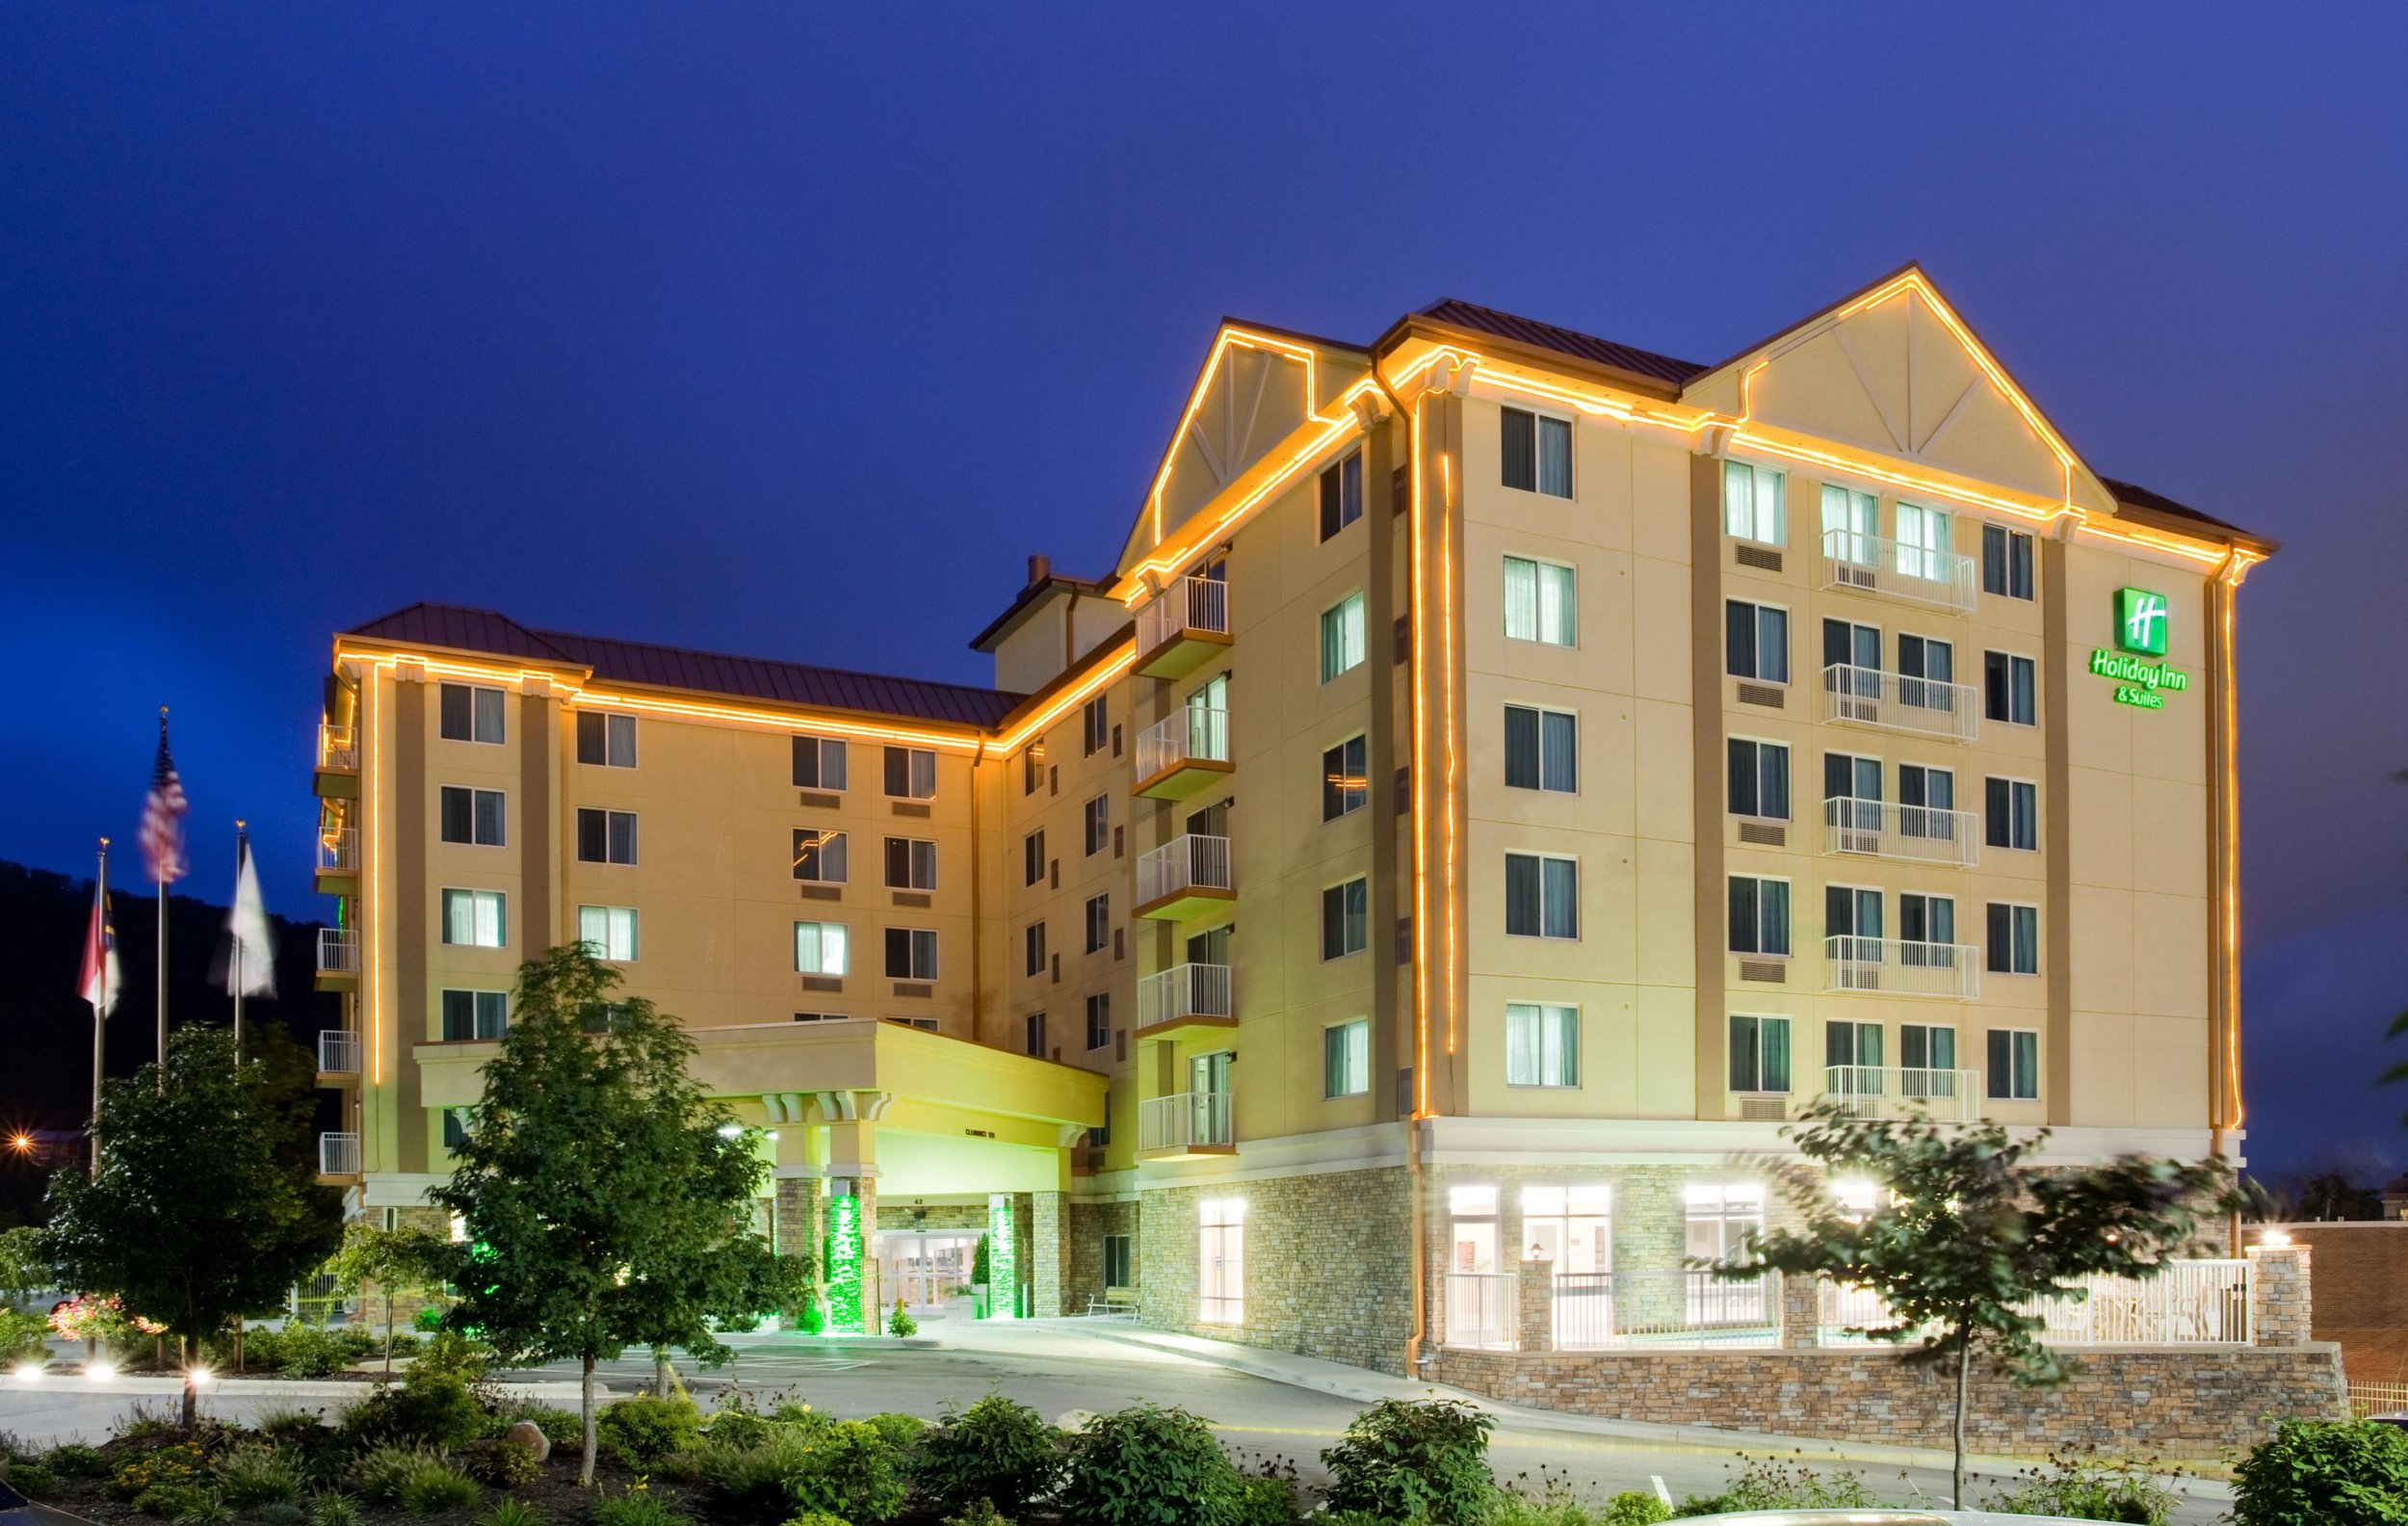 holiday-inn-hotel-and-suites-asheville-2531631180-4x3.jpeg